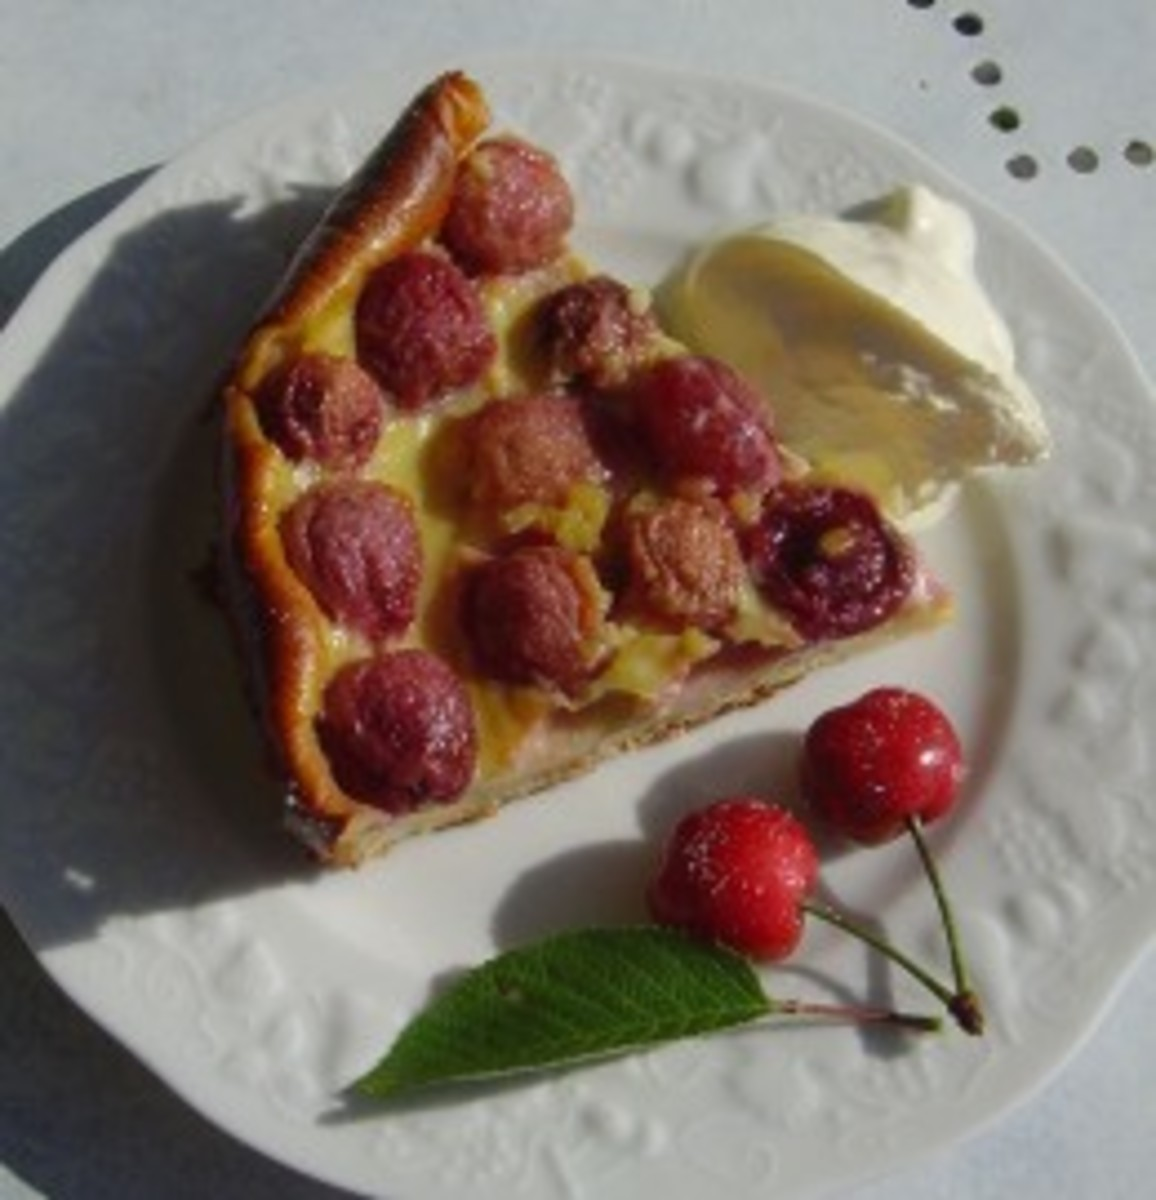 Cherry clafoutis - a Limousin speciality